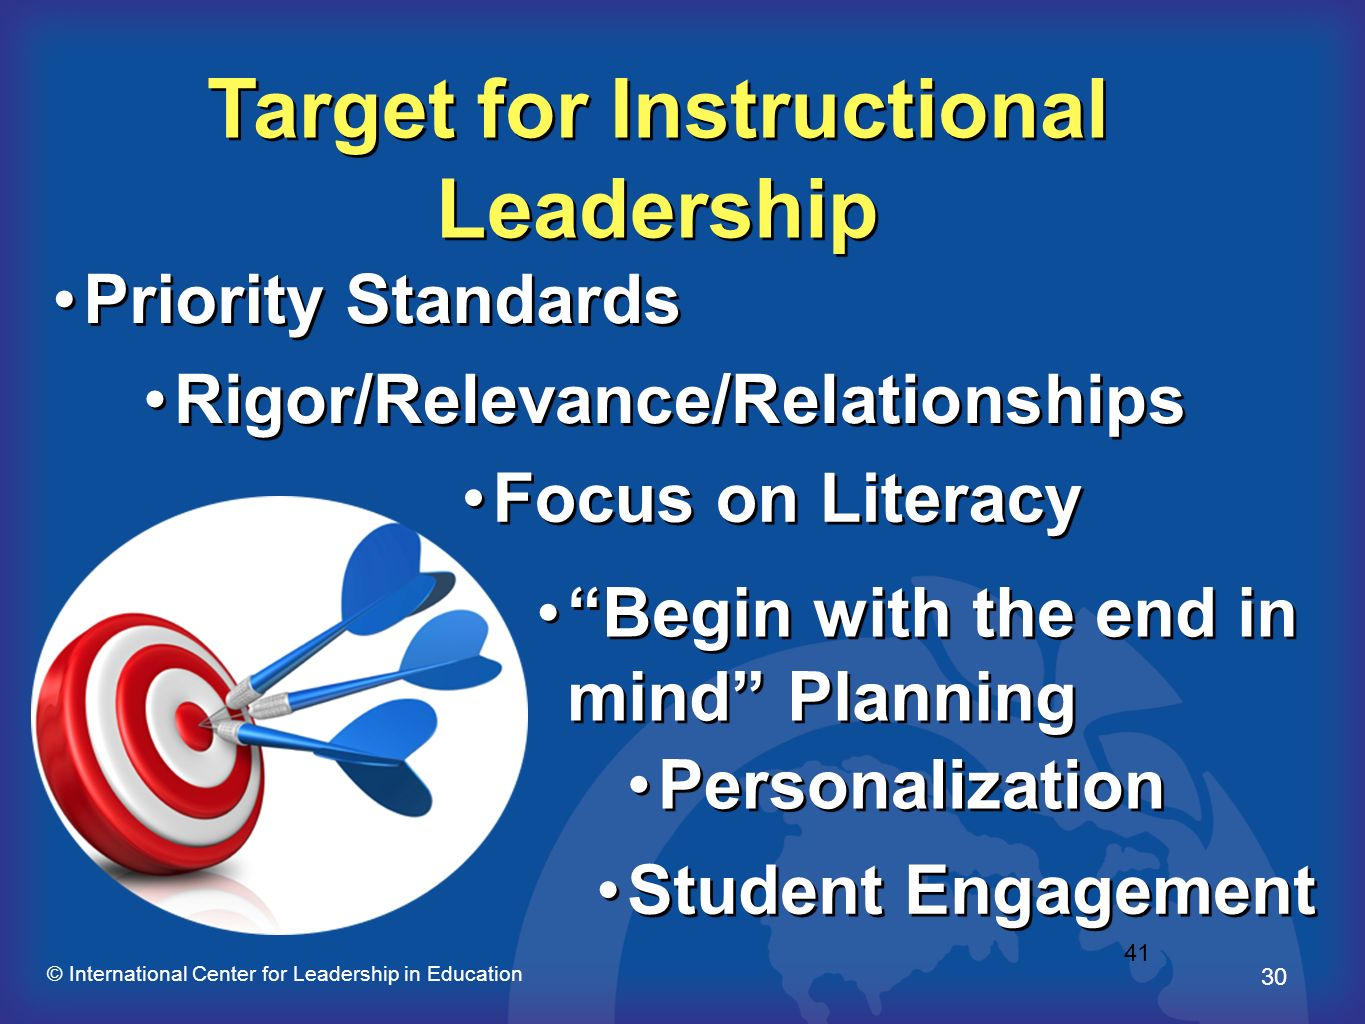 Target for Instructional Leadership